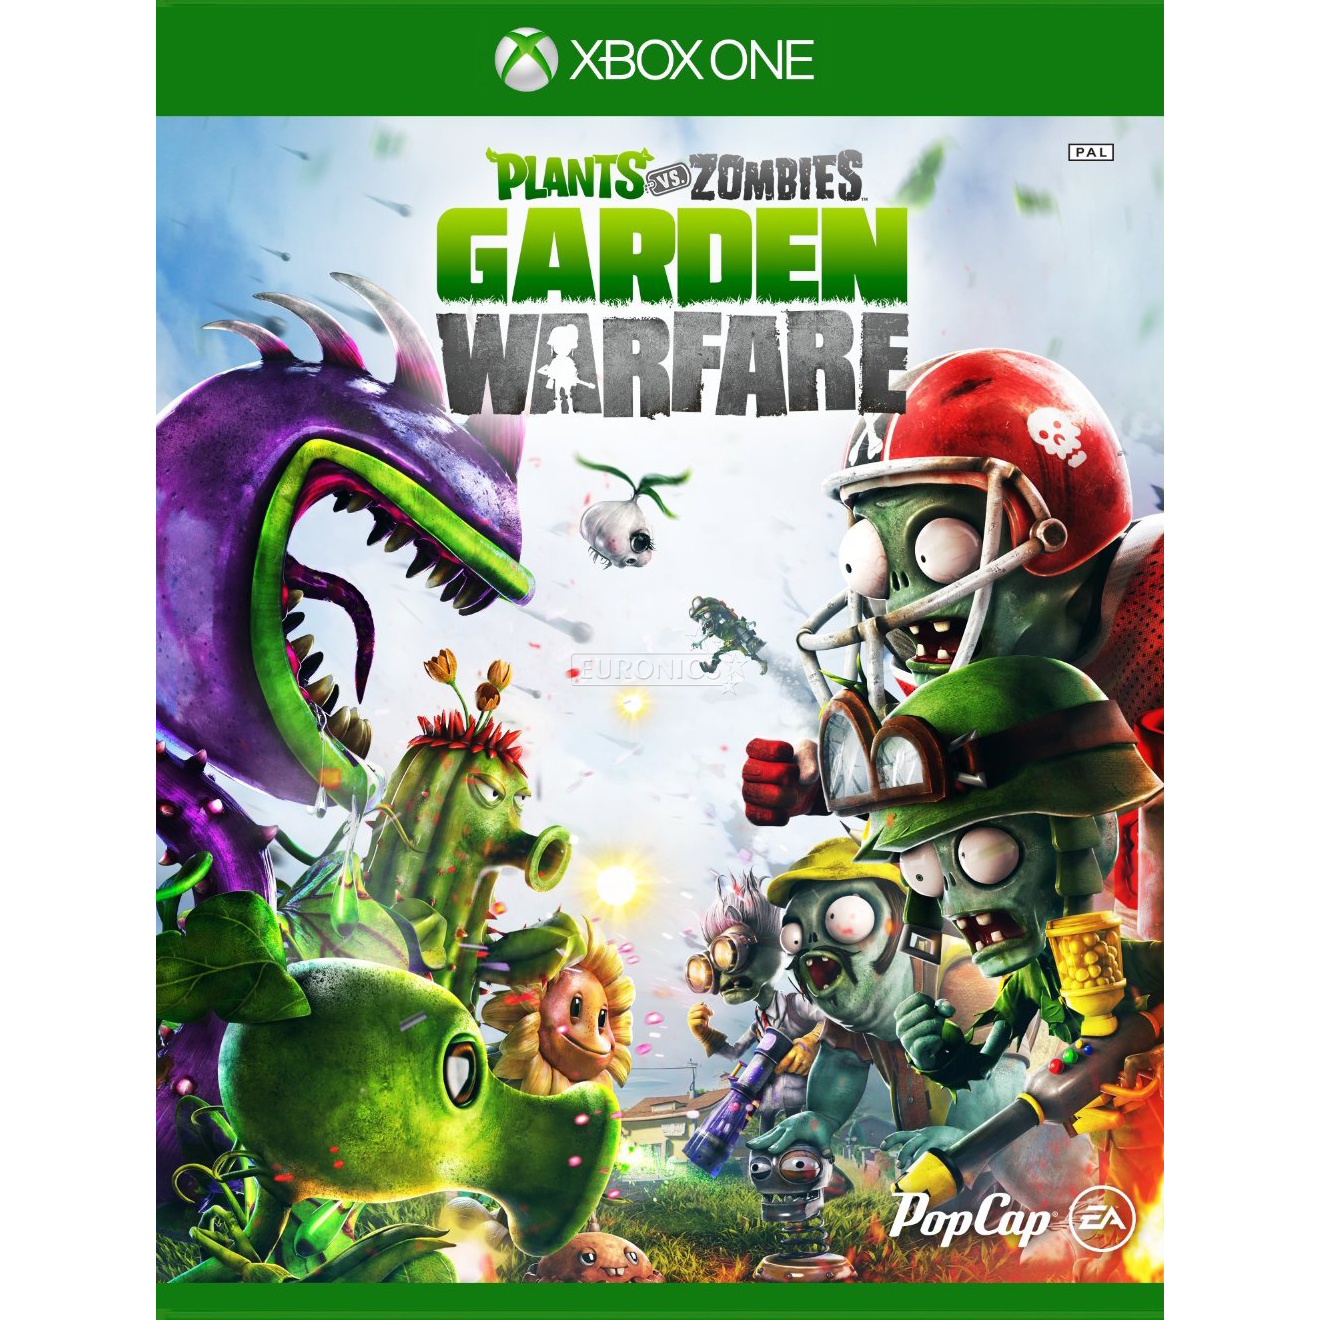 img plants rrview good fun warfare review vs game garden zombies is games blooming